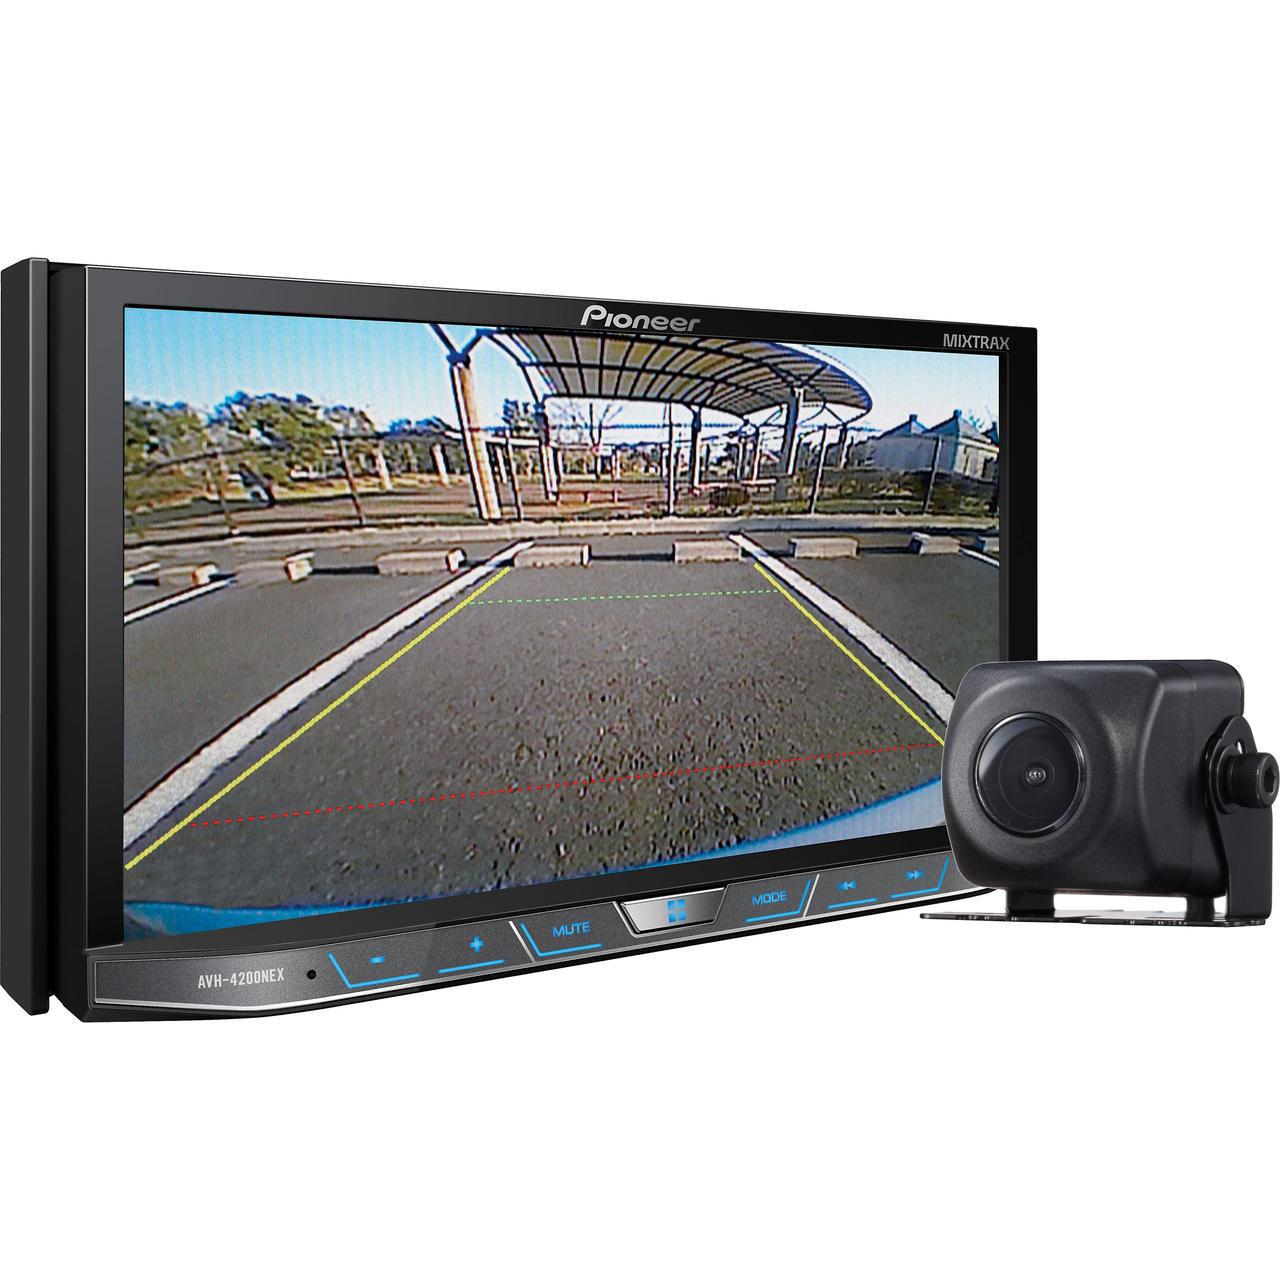 Pioneer 7in Multimedia Receiver with Rear View Camera and GC